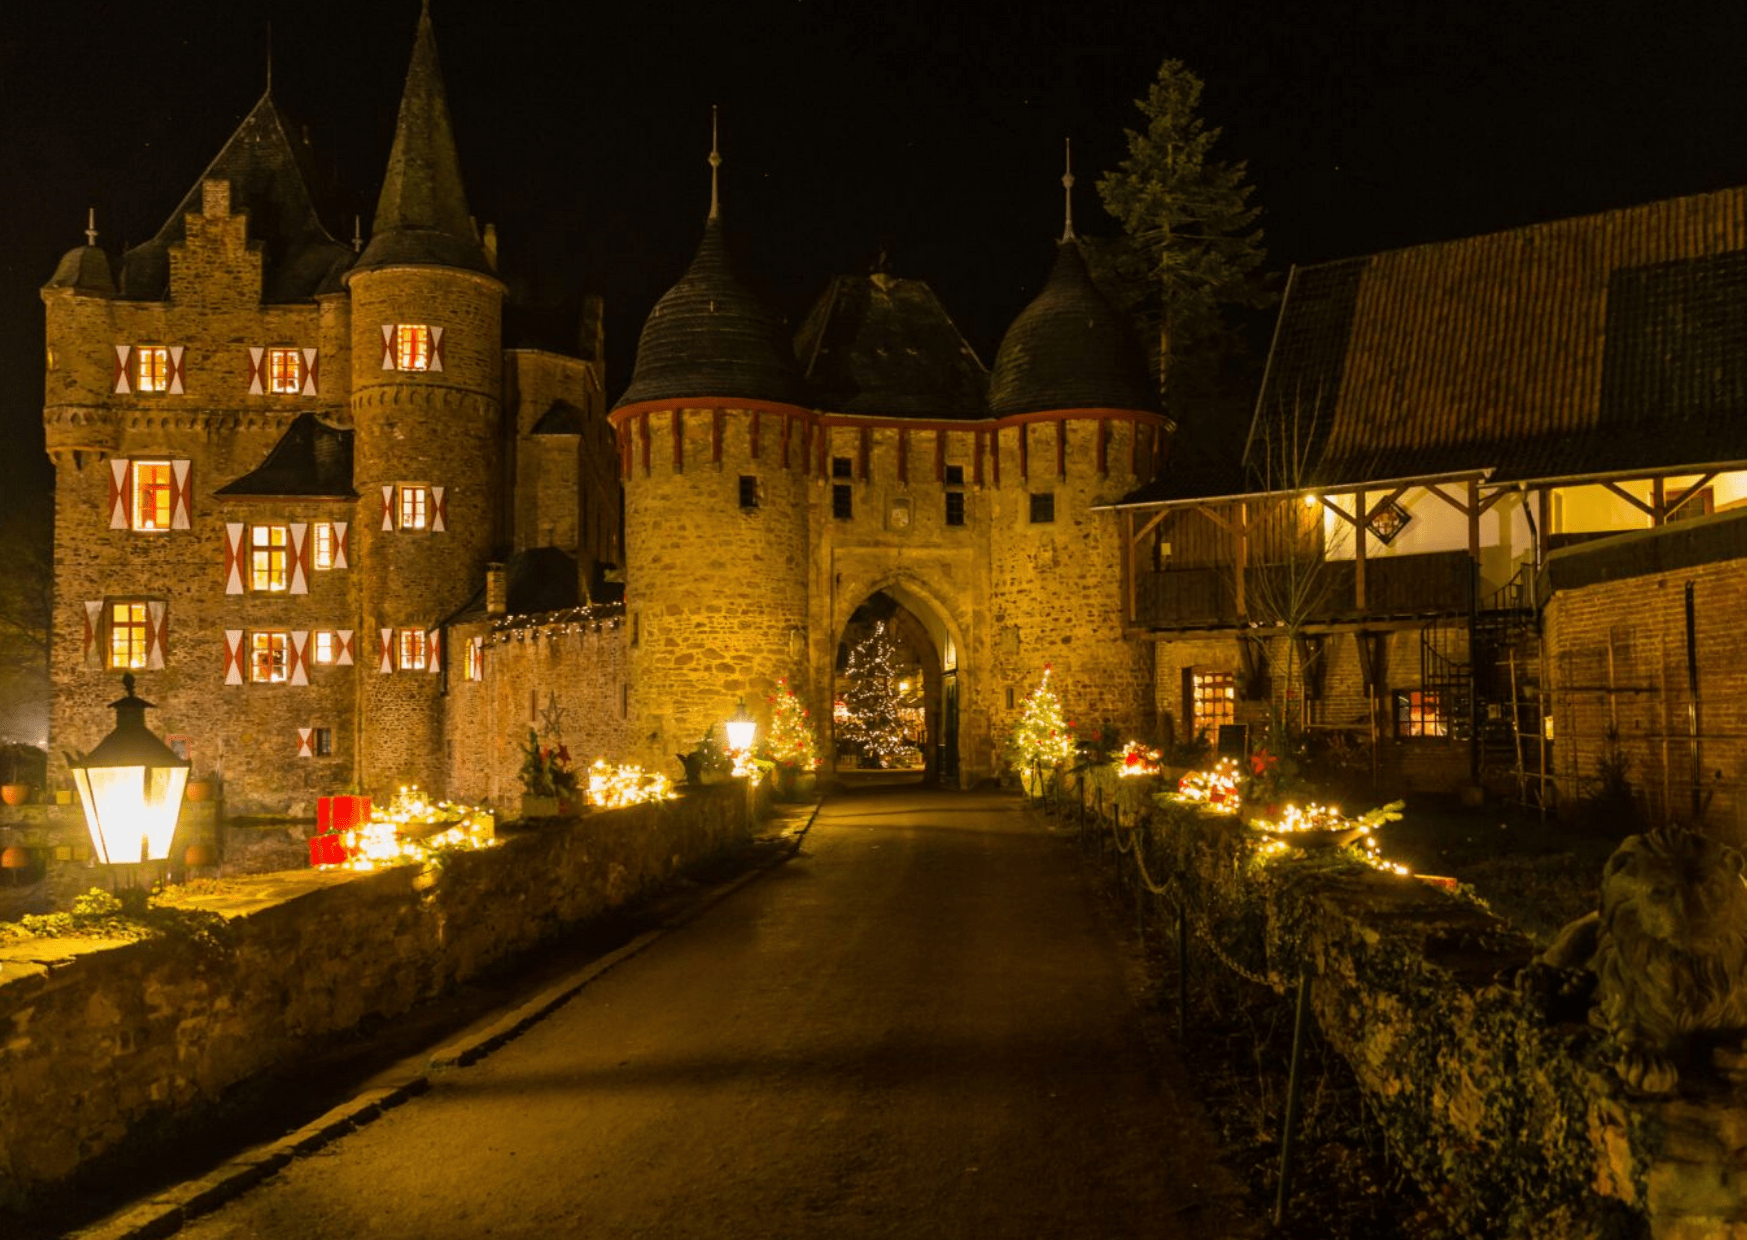 Looking for a romantic Christmas market at a castle? Try the Burgweihnacht at Satzvey Castle